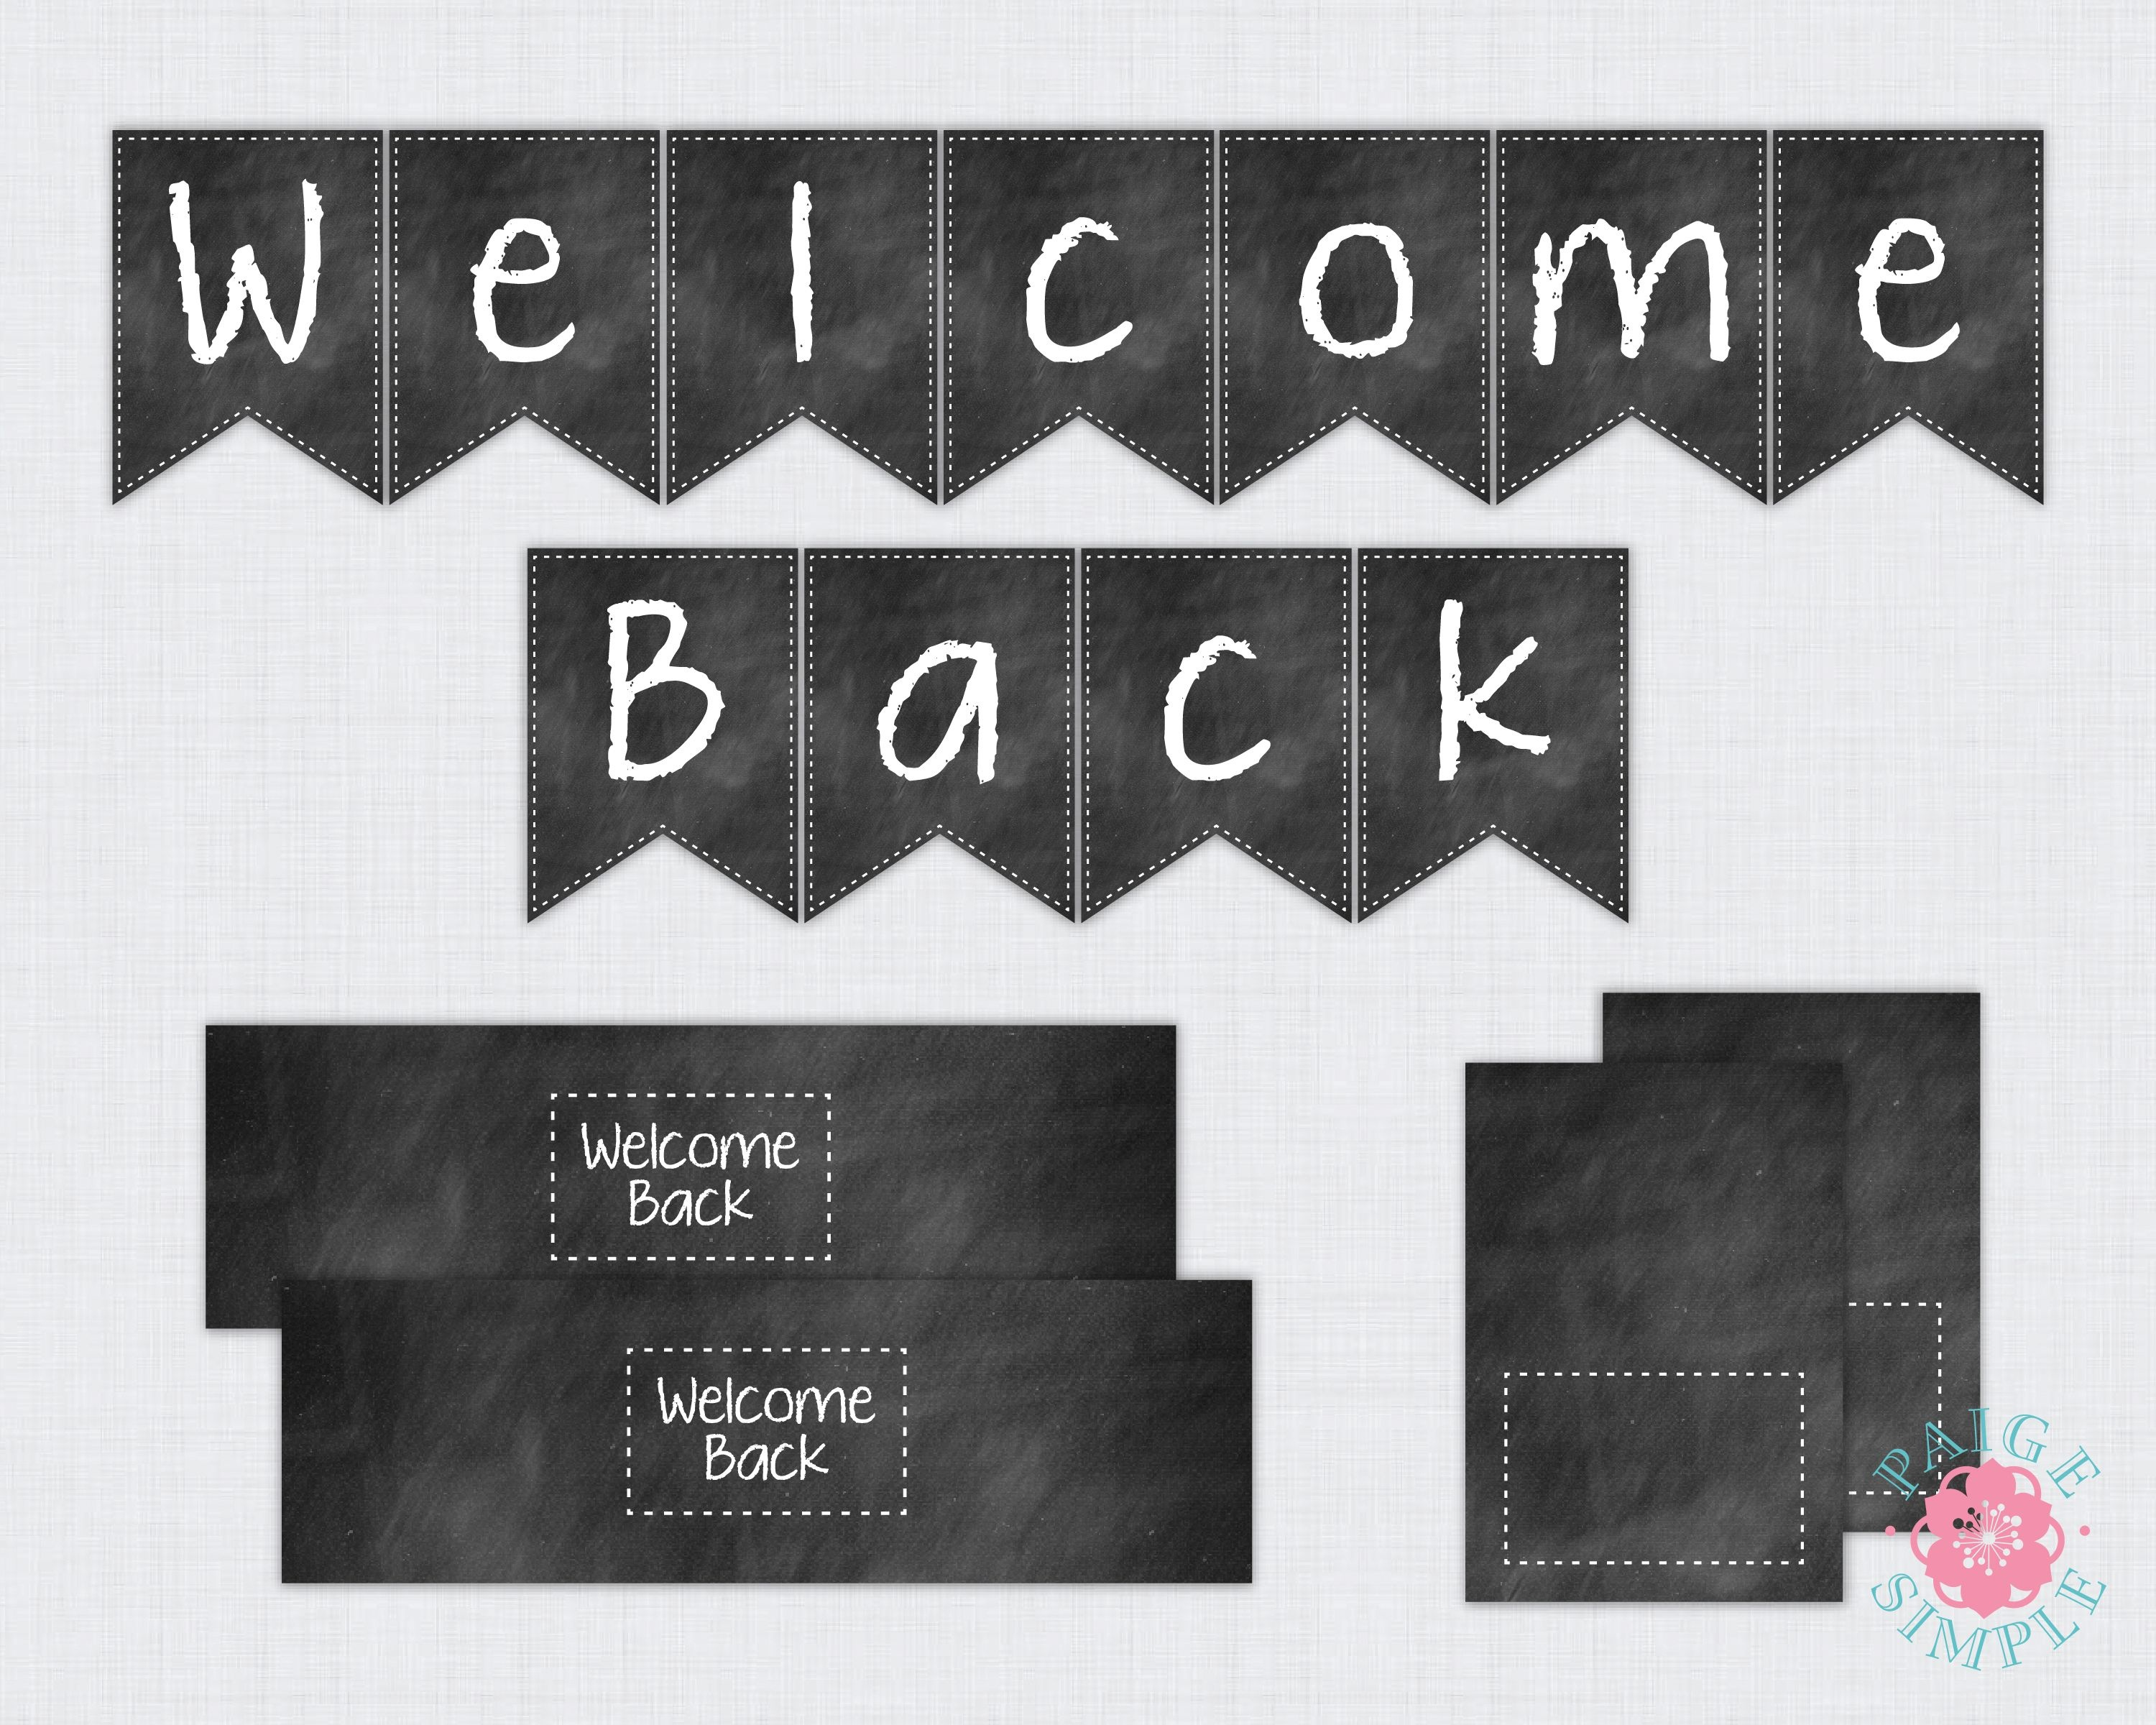 Free Printable Welcome Back To School Banner | Bulletin Boards - Welcome Back Banner Printable Free